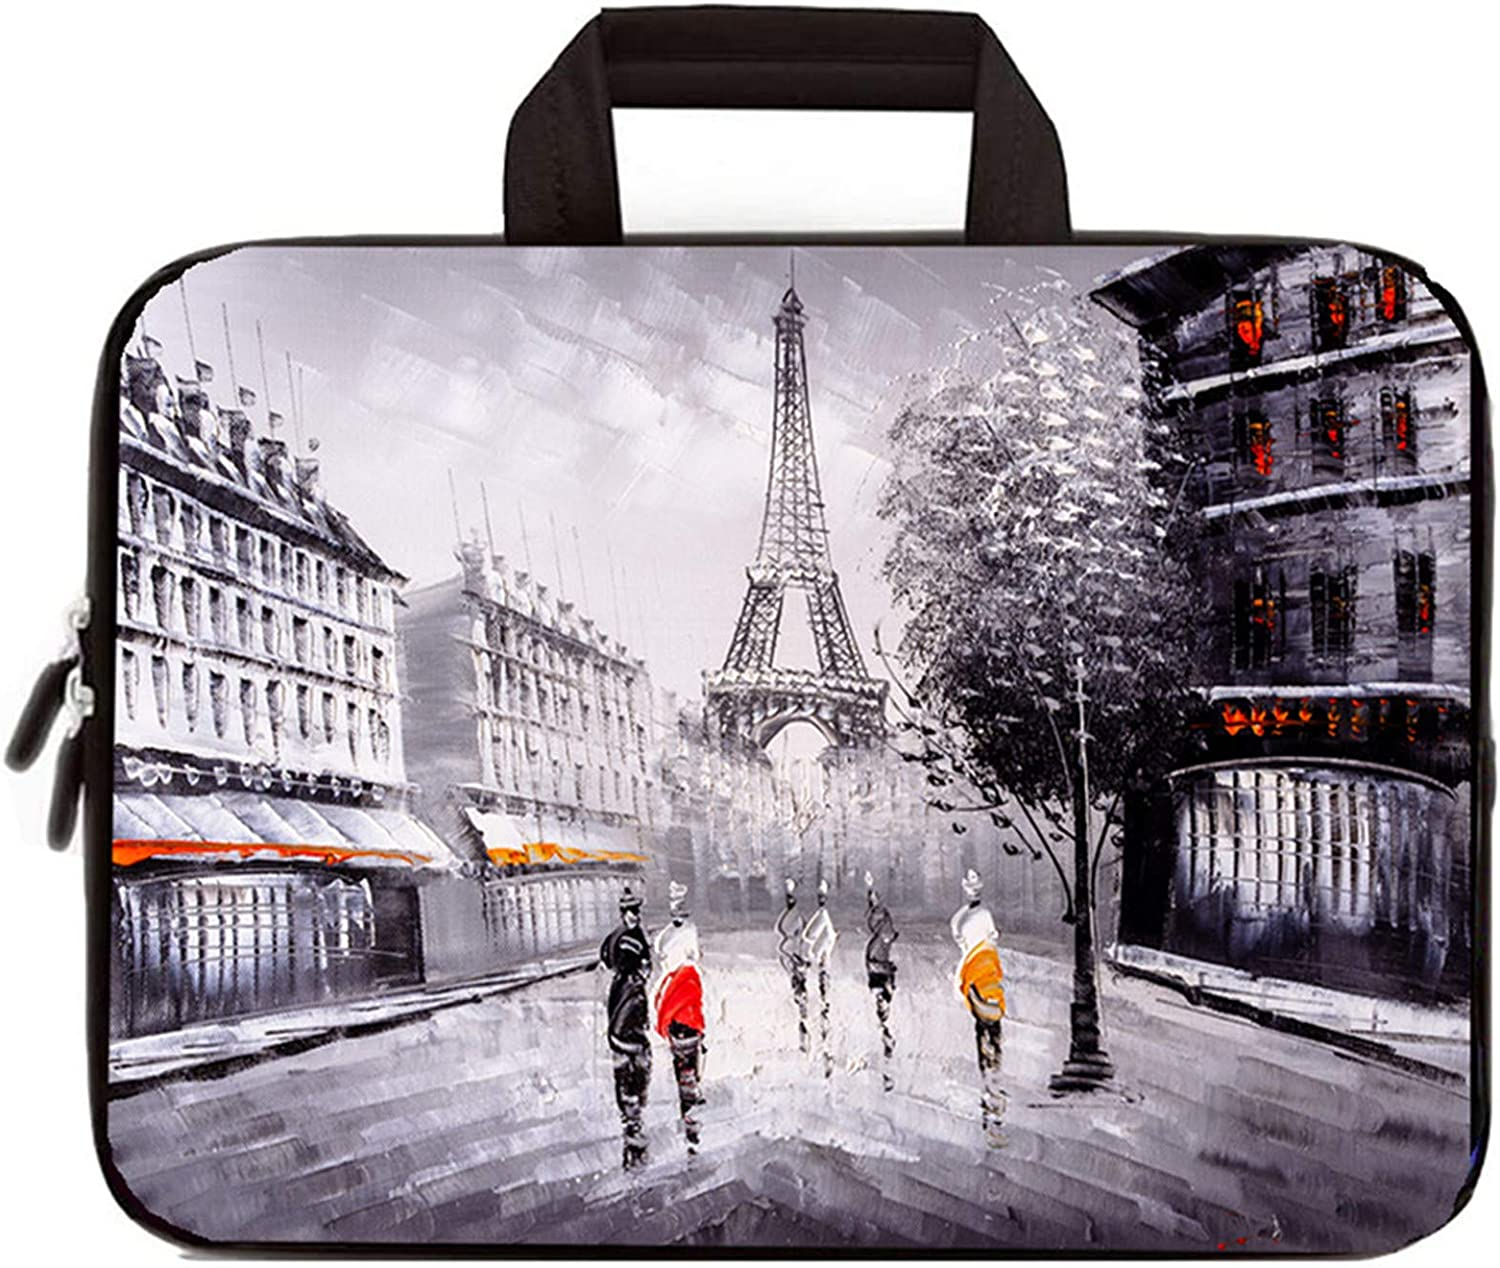 iColor 11.6 12 12.1 12.2 Inch Laptop Carrying Case - Protective Sleeve Bag with Handle - Lightweight Chromebook Ultrabook Travel Briefcase (Eiffel Tower)